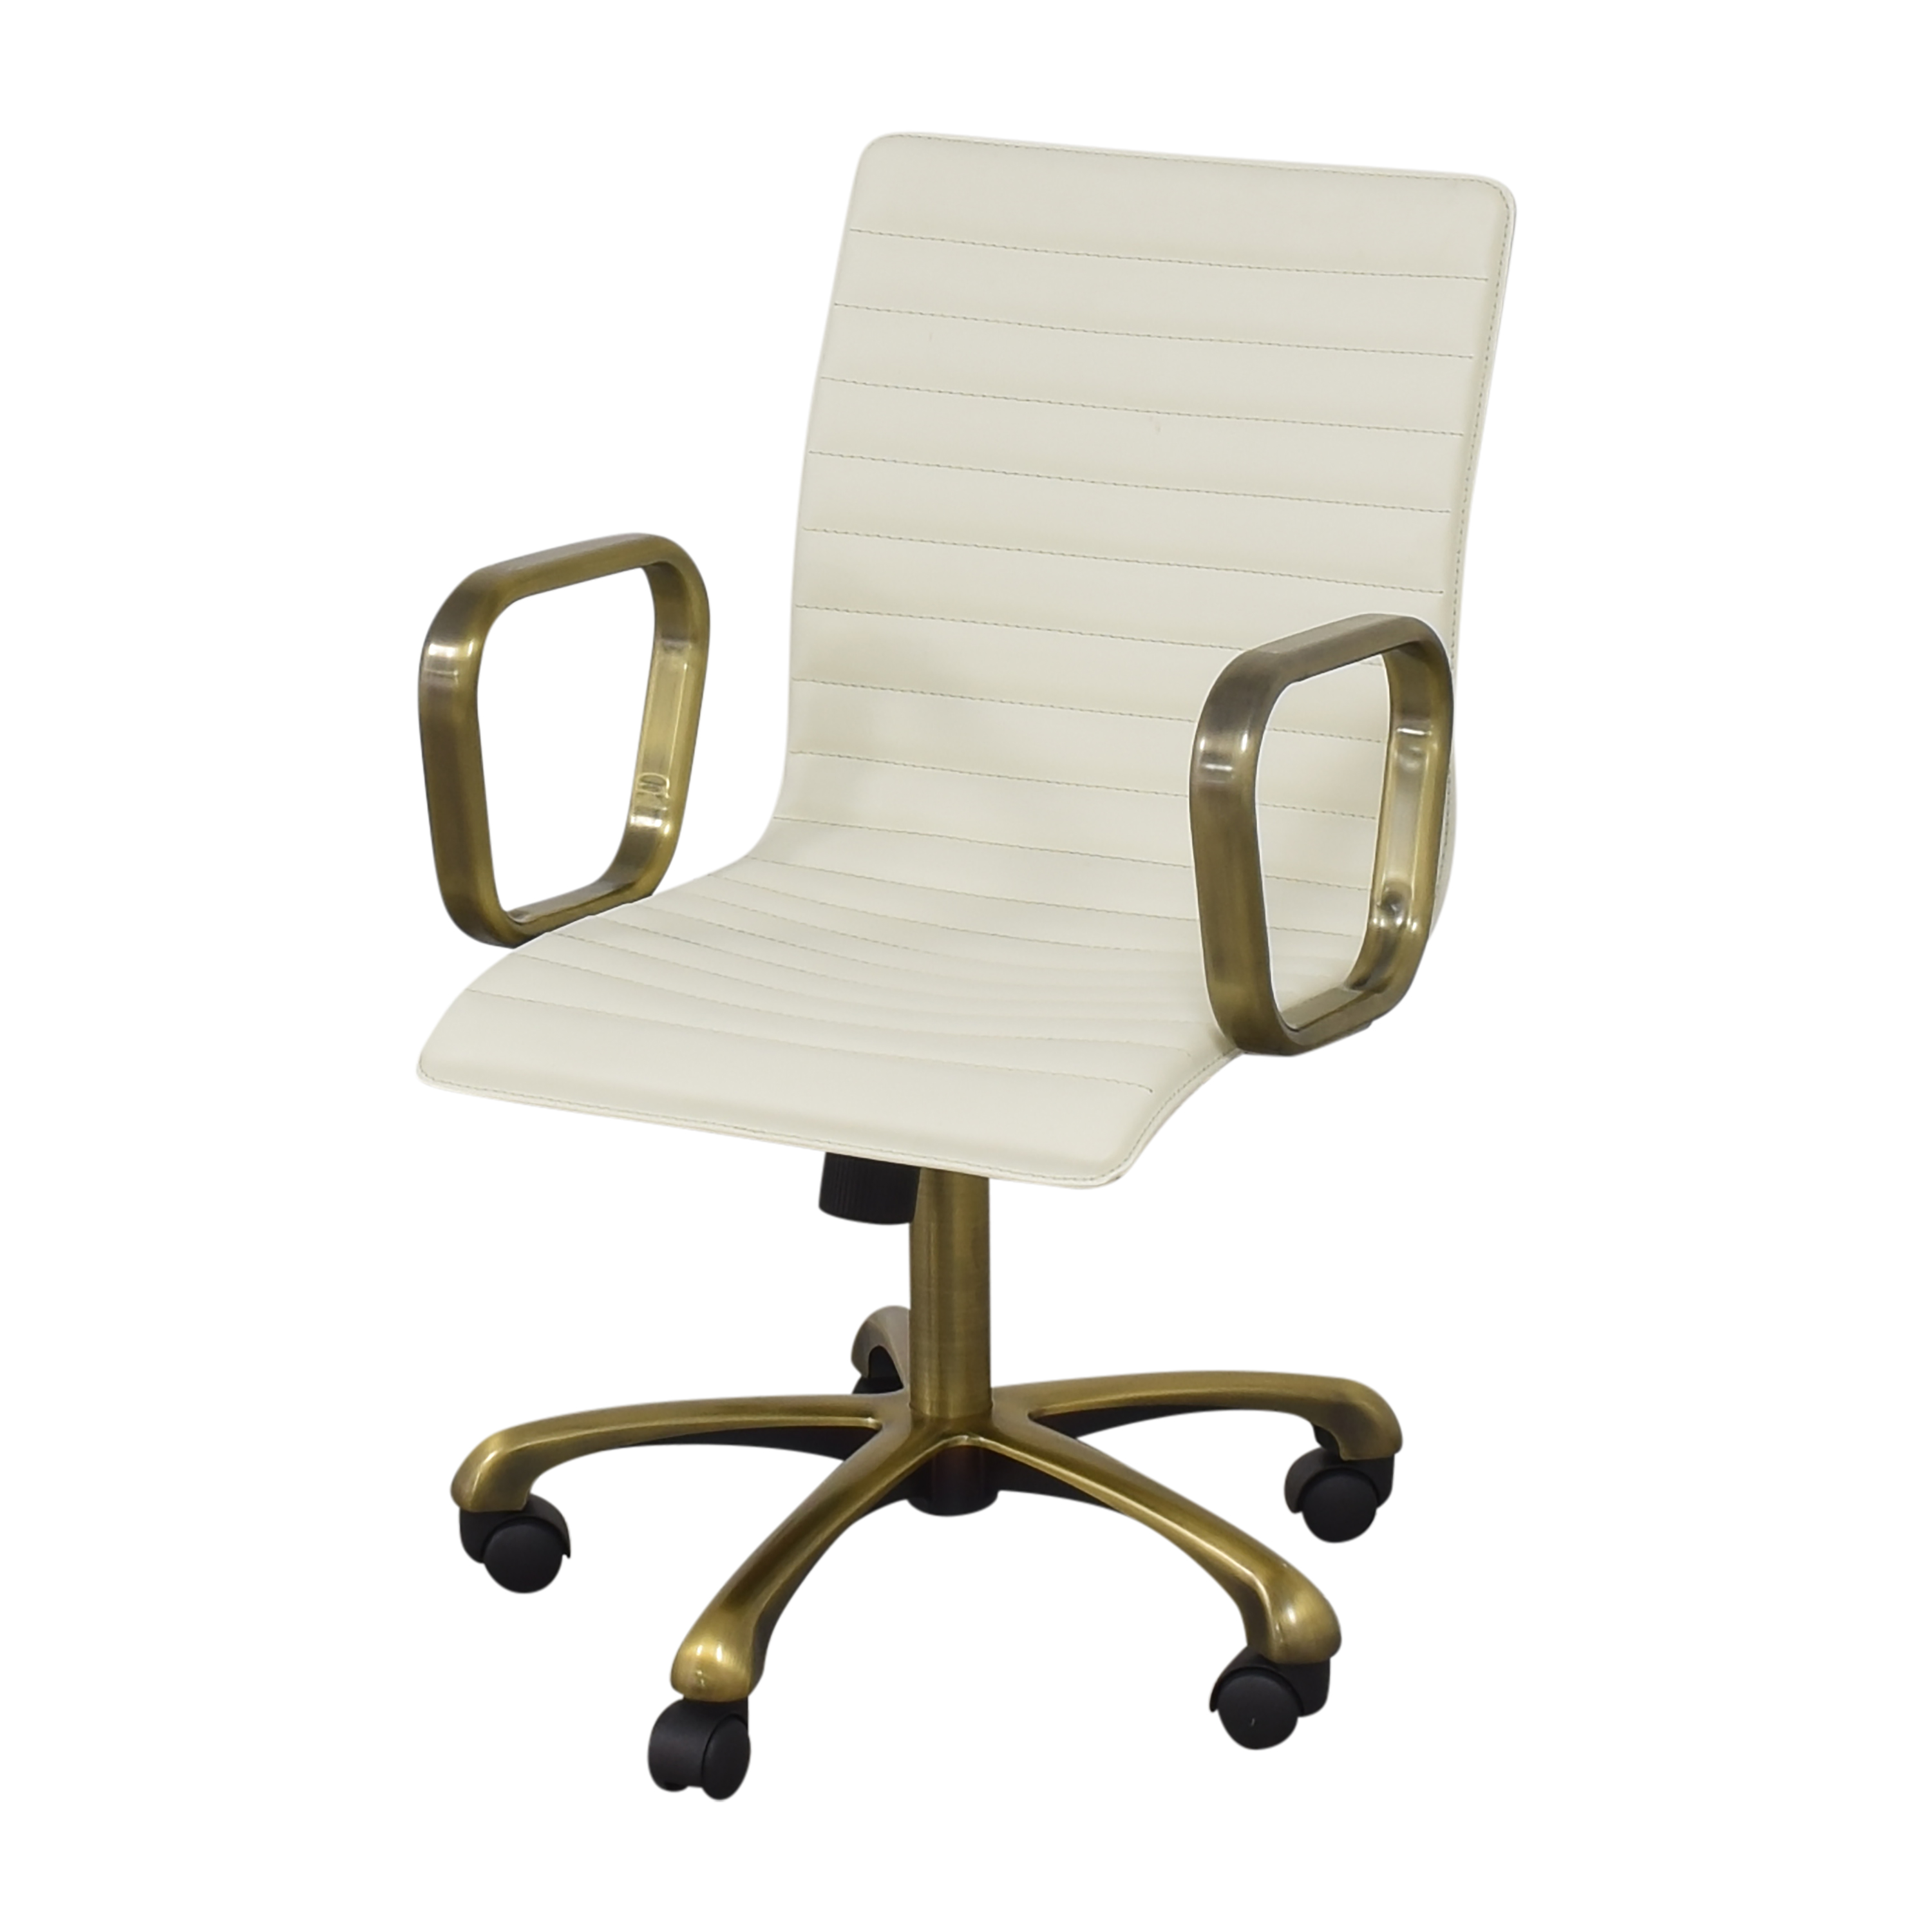 Crate & Barrel Crate & Barrel Ripple Office Chair Chairs